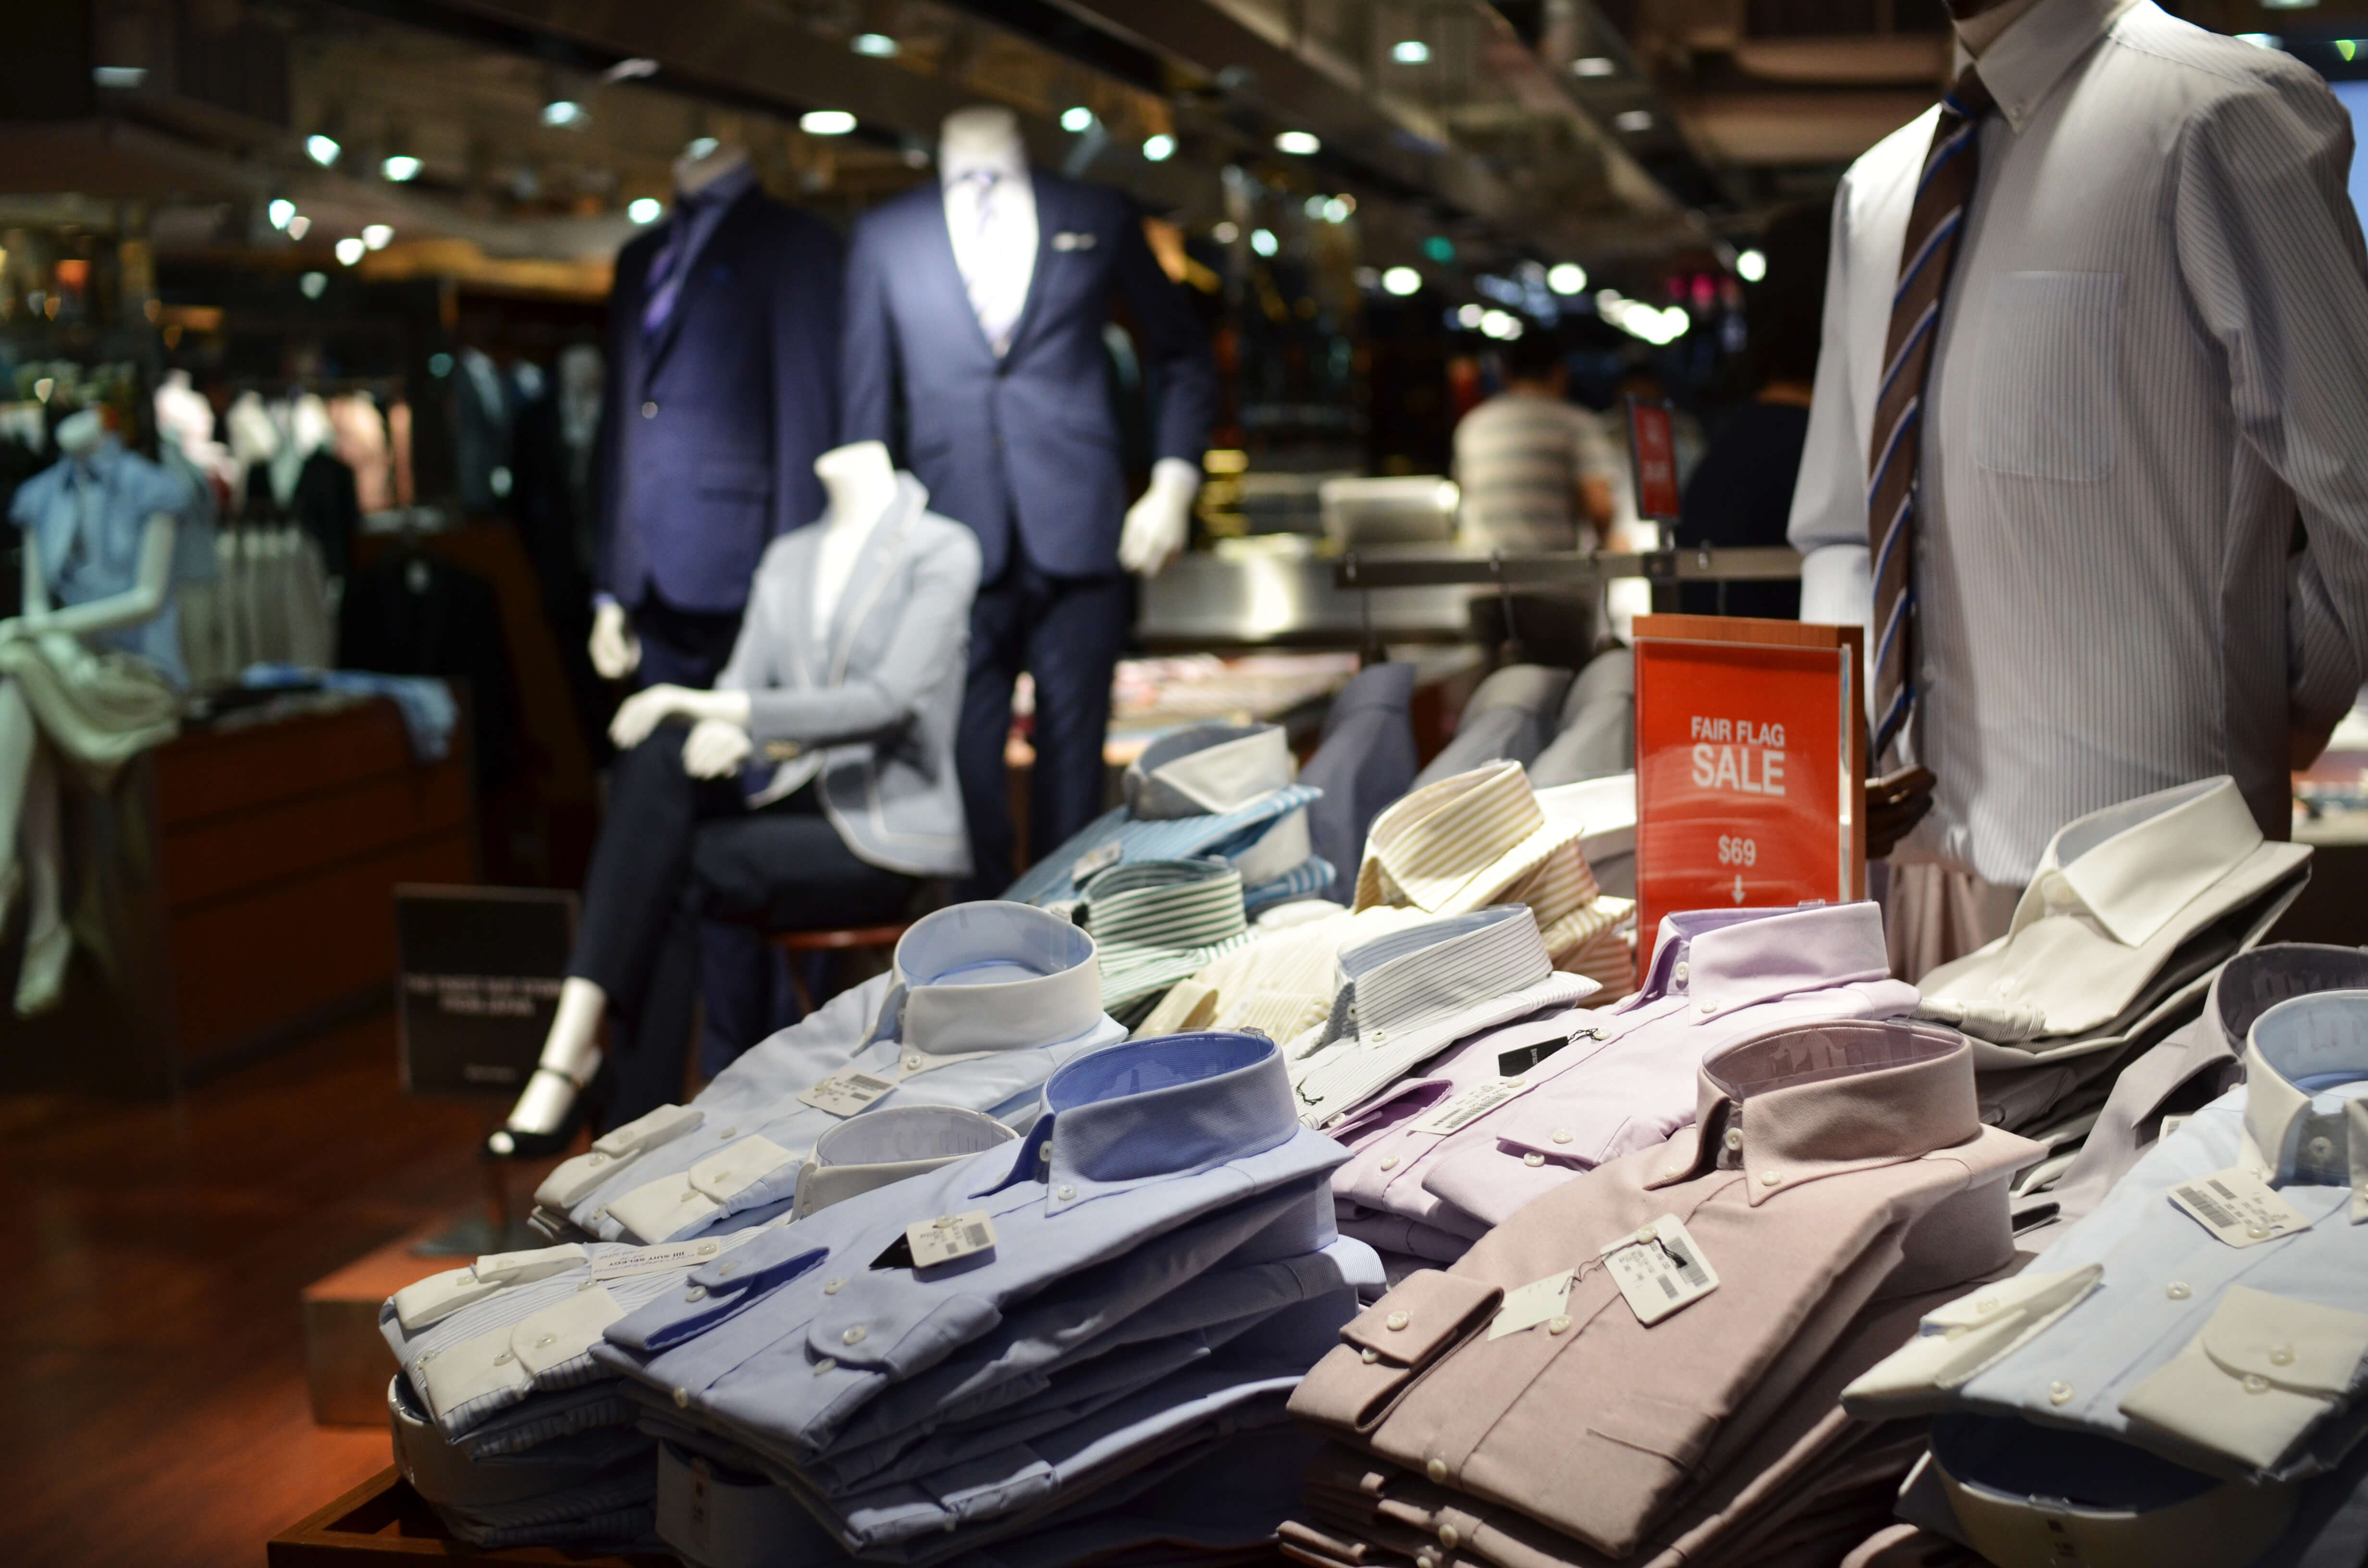 A Siamese Neural Network Application for Sales Forecasting of New Fashion Products Using Heterogeneous Data